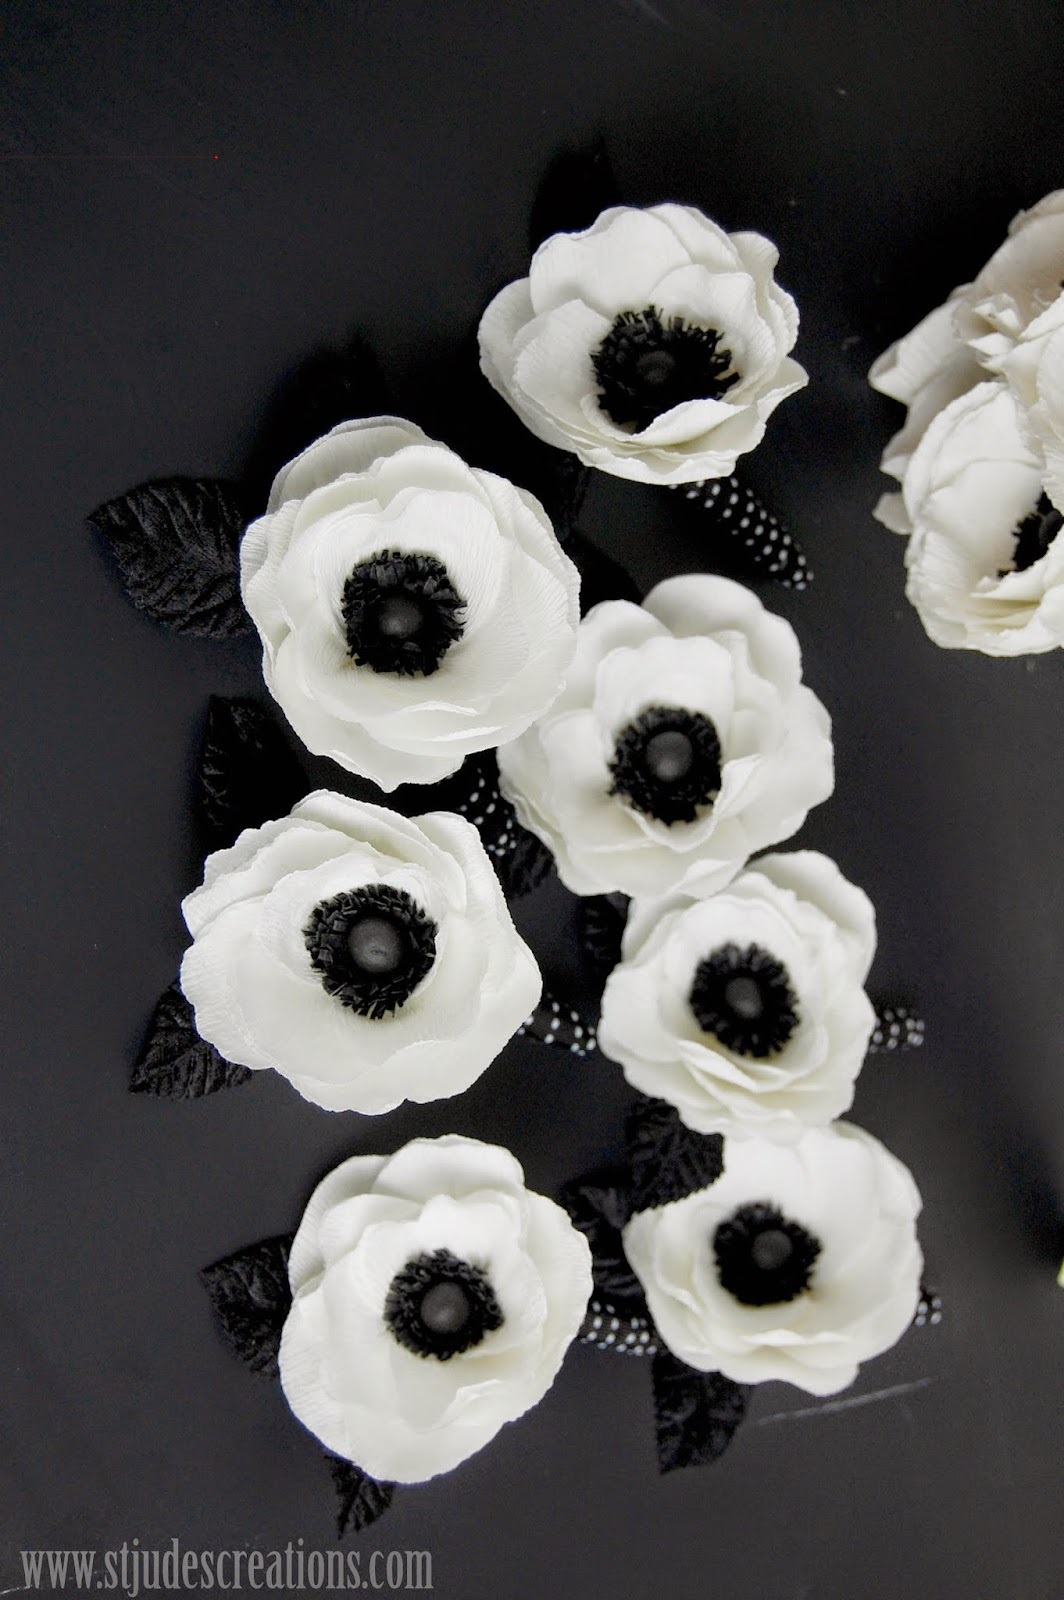 Anemone paper flower bridal bouquet black and white wedding paper flowers wedding bouquet black and white wedding paper flowers anemone mightylinksfo